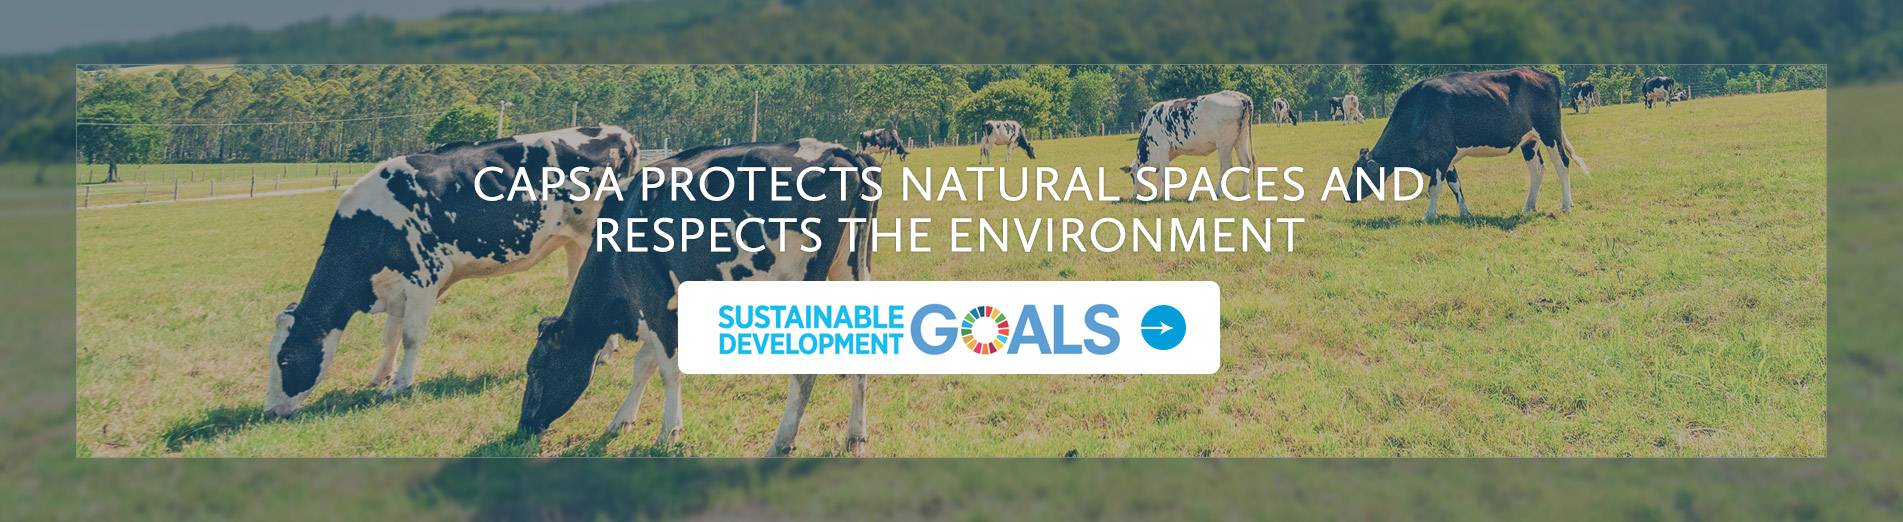 Capsa protects natural spaces and respects the environment